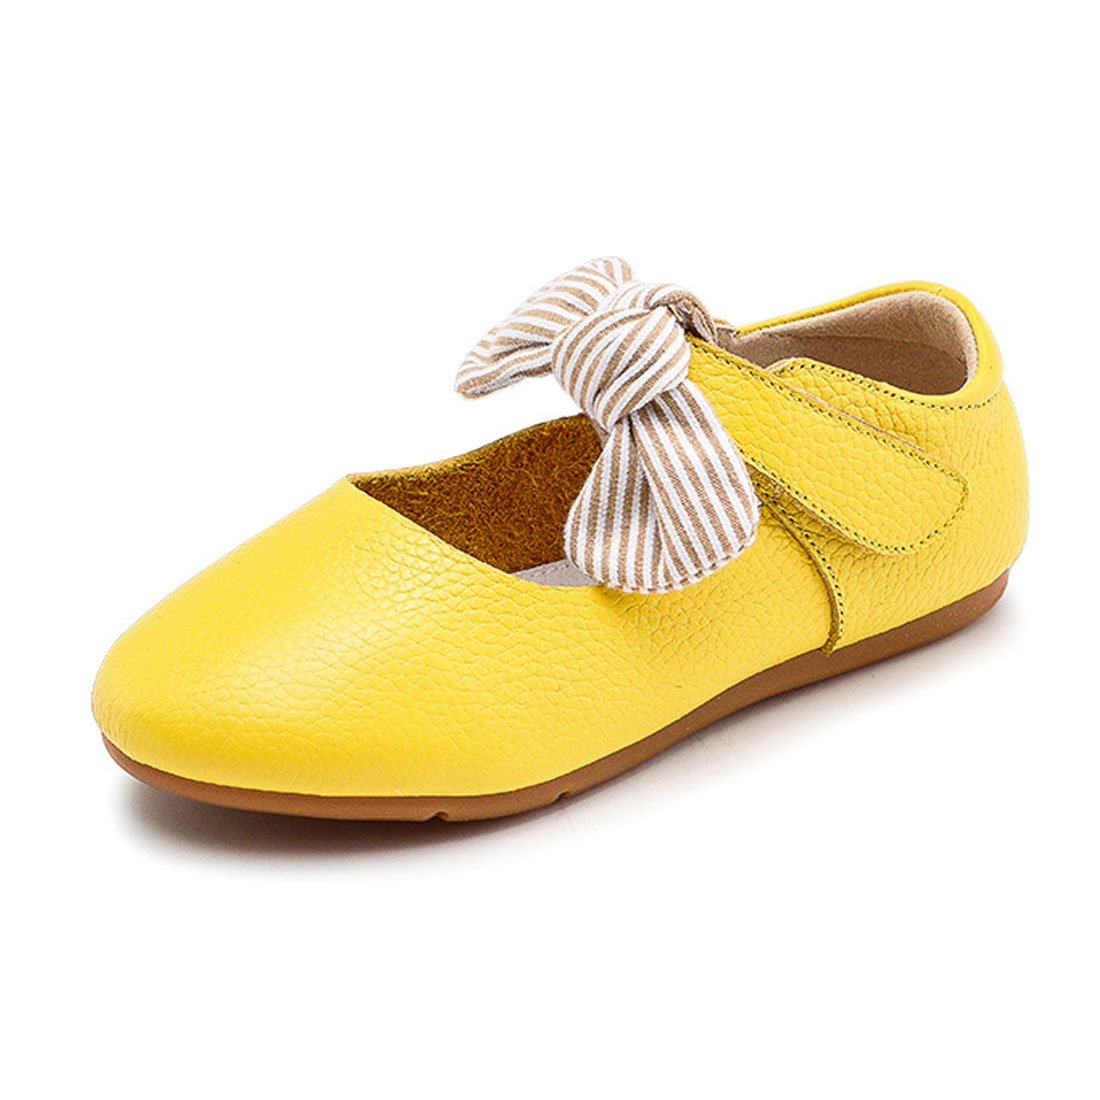 Leather comfortable lovely with bow  flat dress shoes girl kids shoesGCS10